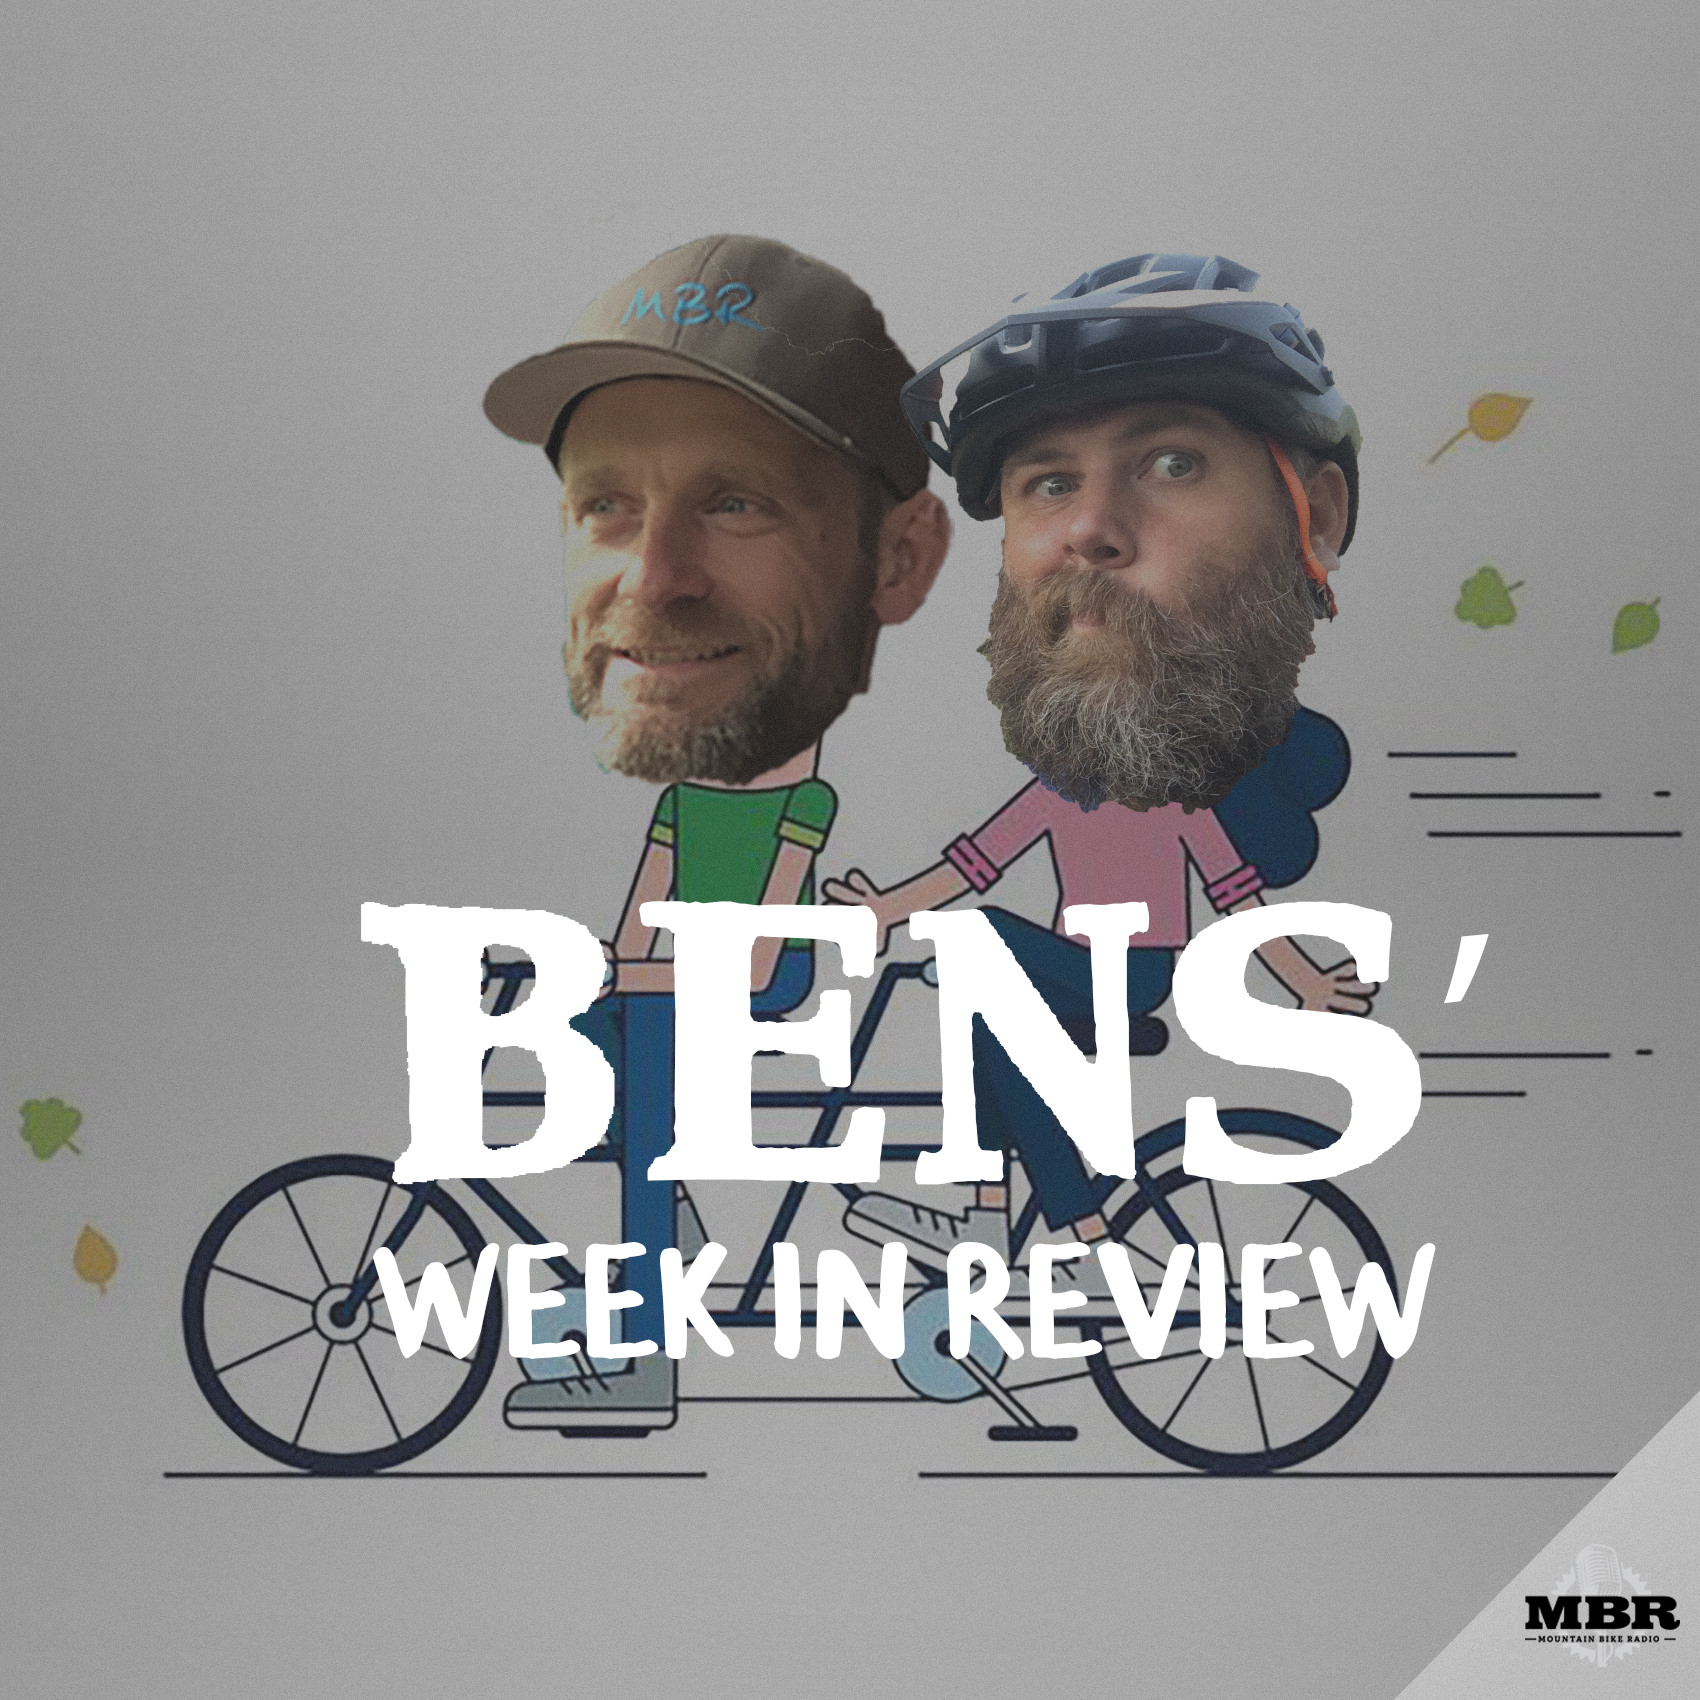 Bens' Week in Review - Episode 1: Troubles in the Kingdom, Bike brand news, Psychedelic Sinyard, Radiosynthesis, and Missing Elk